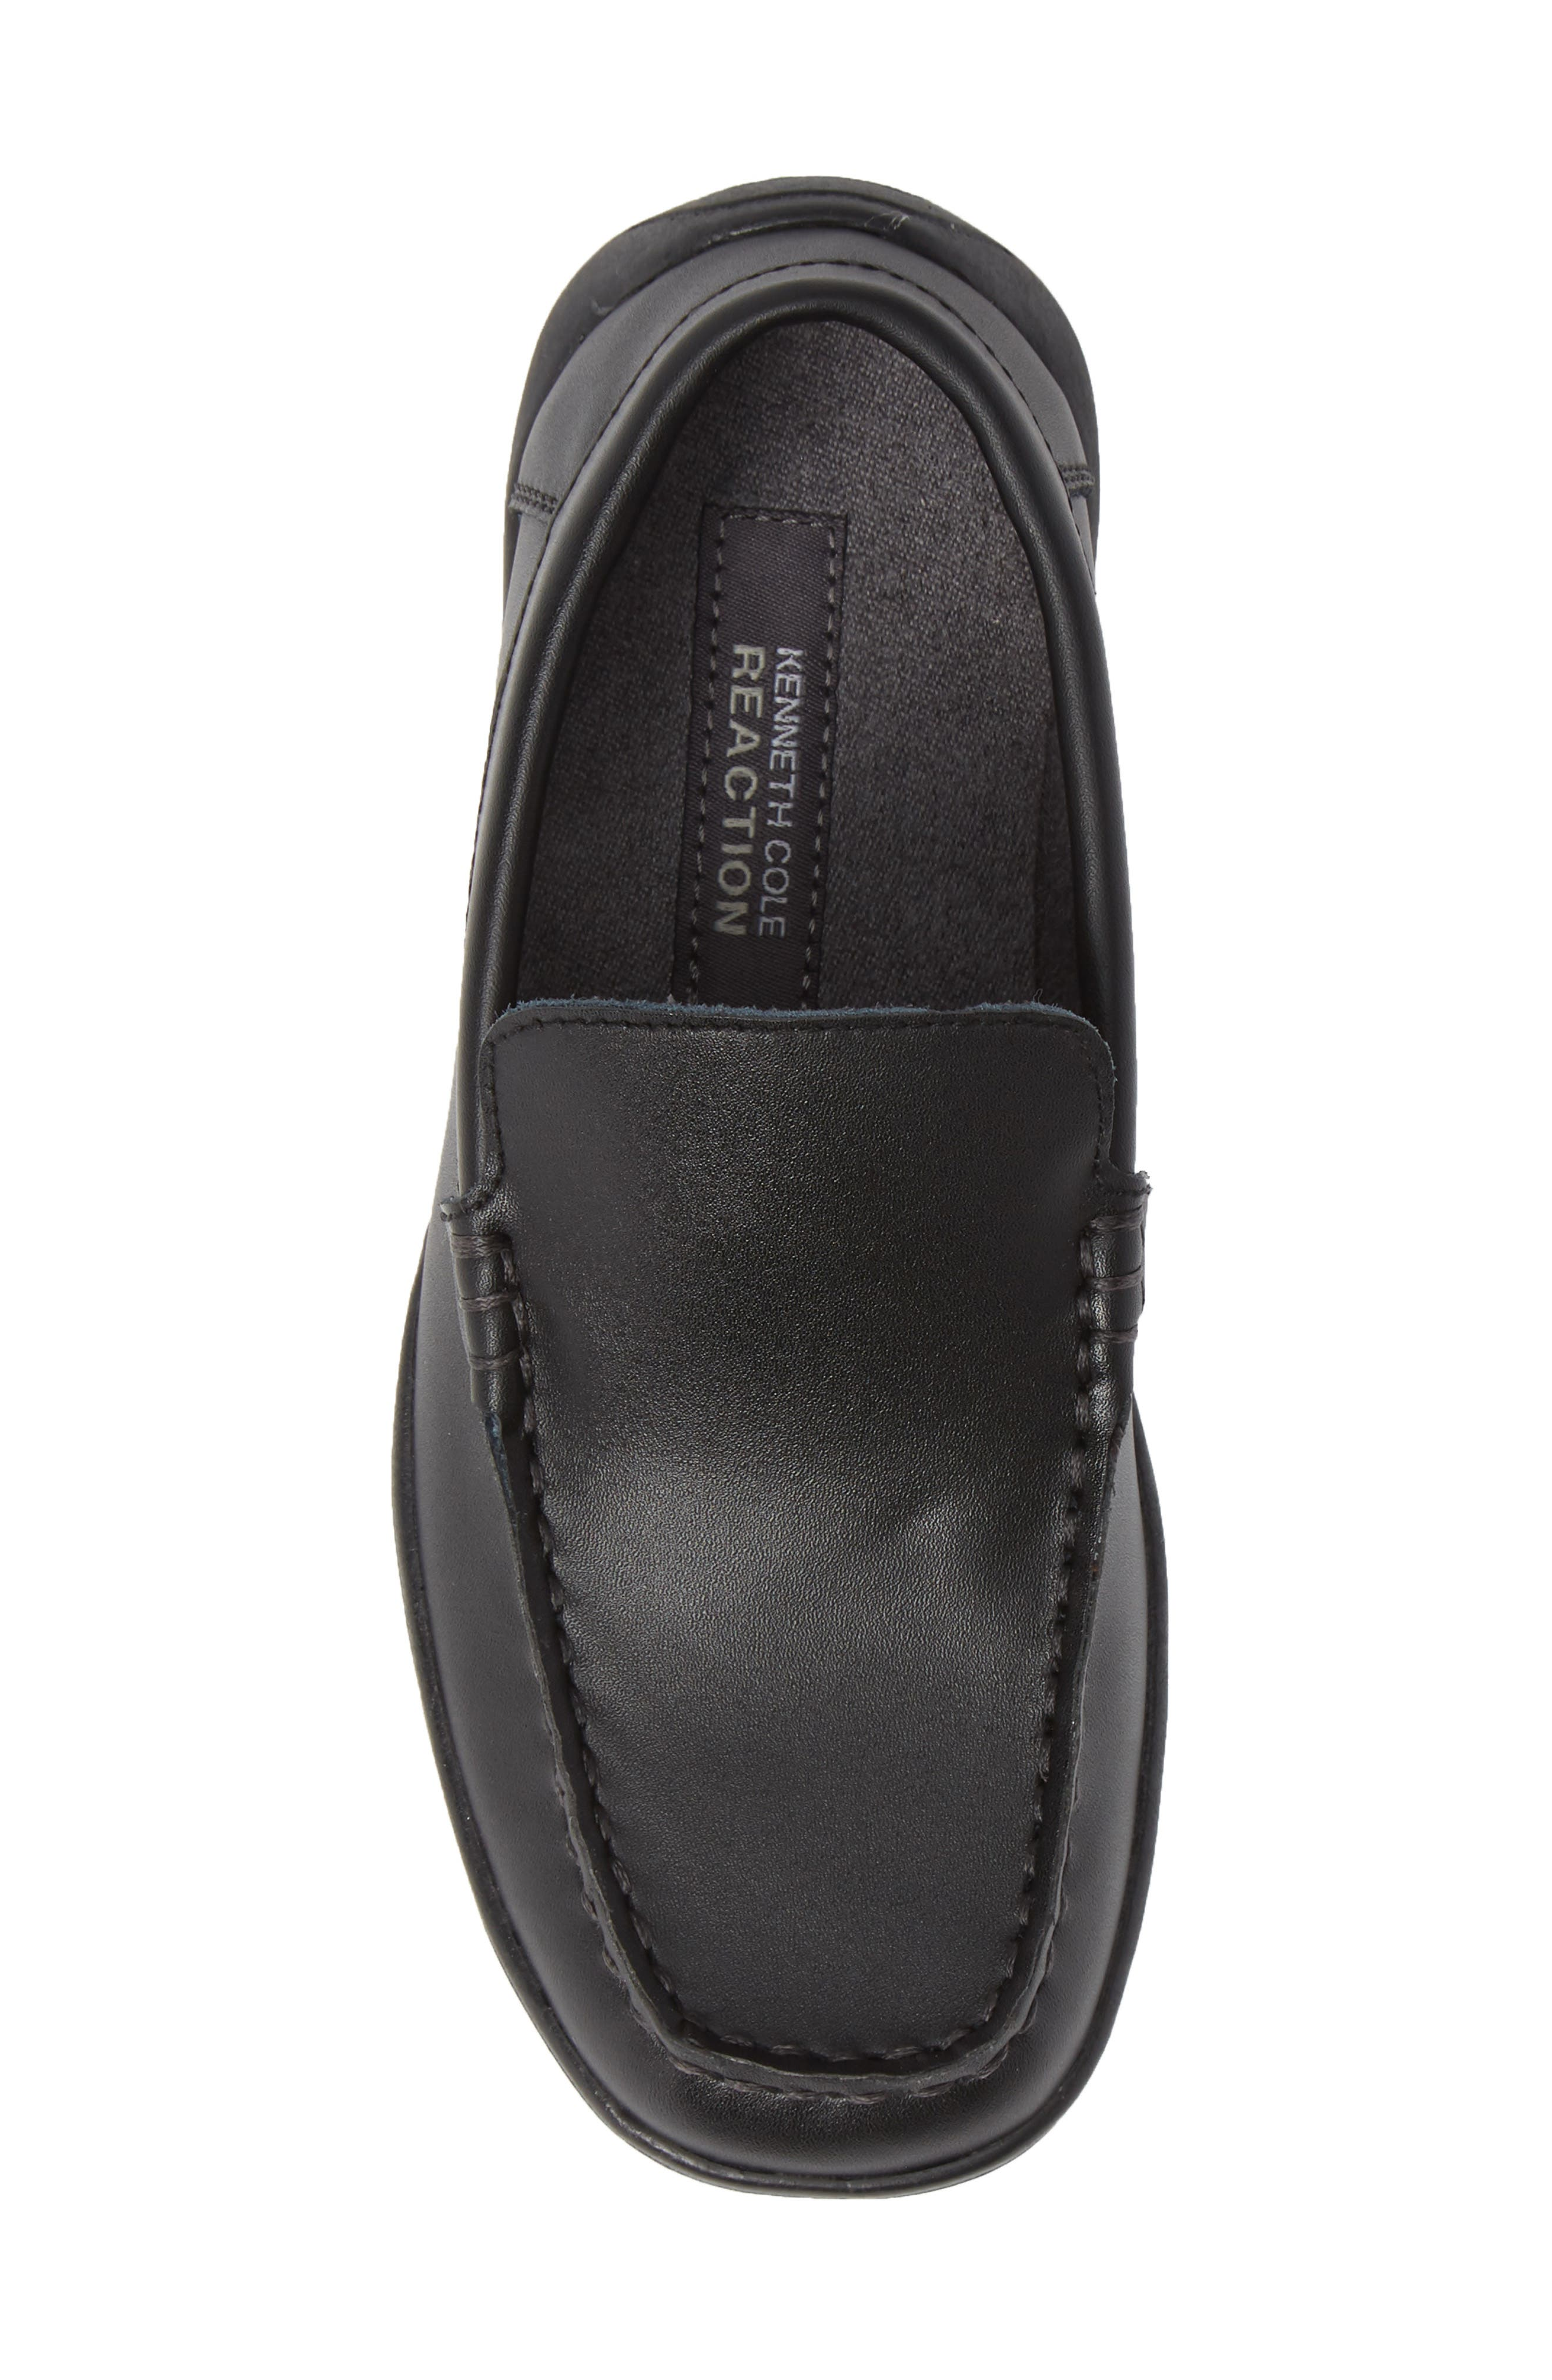 REACTION KENNETH COLE, Driving Dime Moccasin, Alternate thumbnail 5, color, DARK BLACK LEATHER